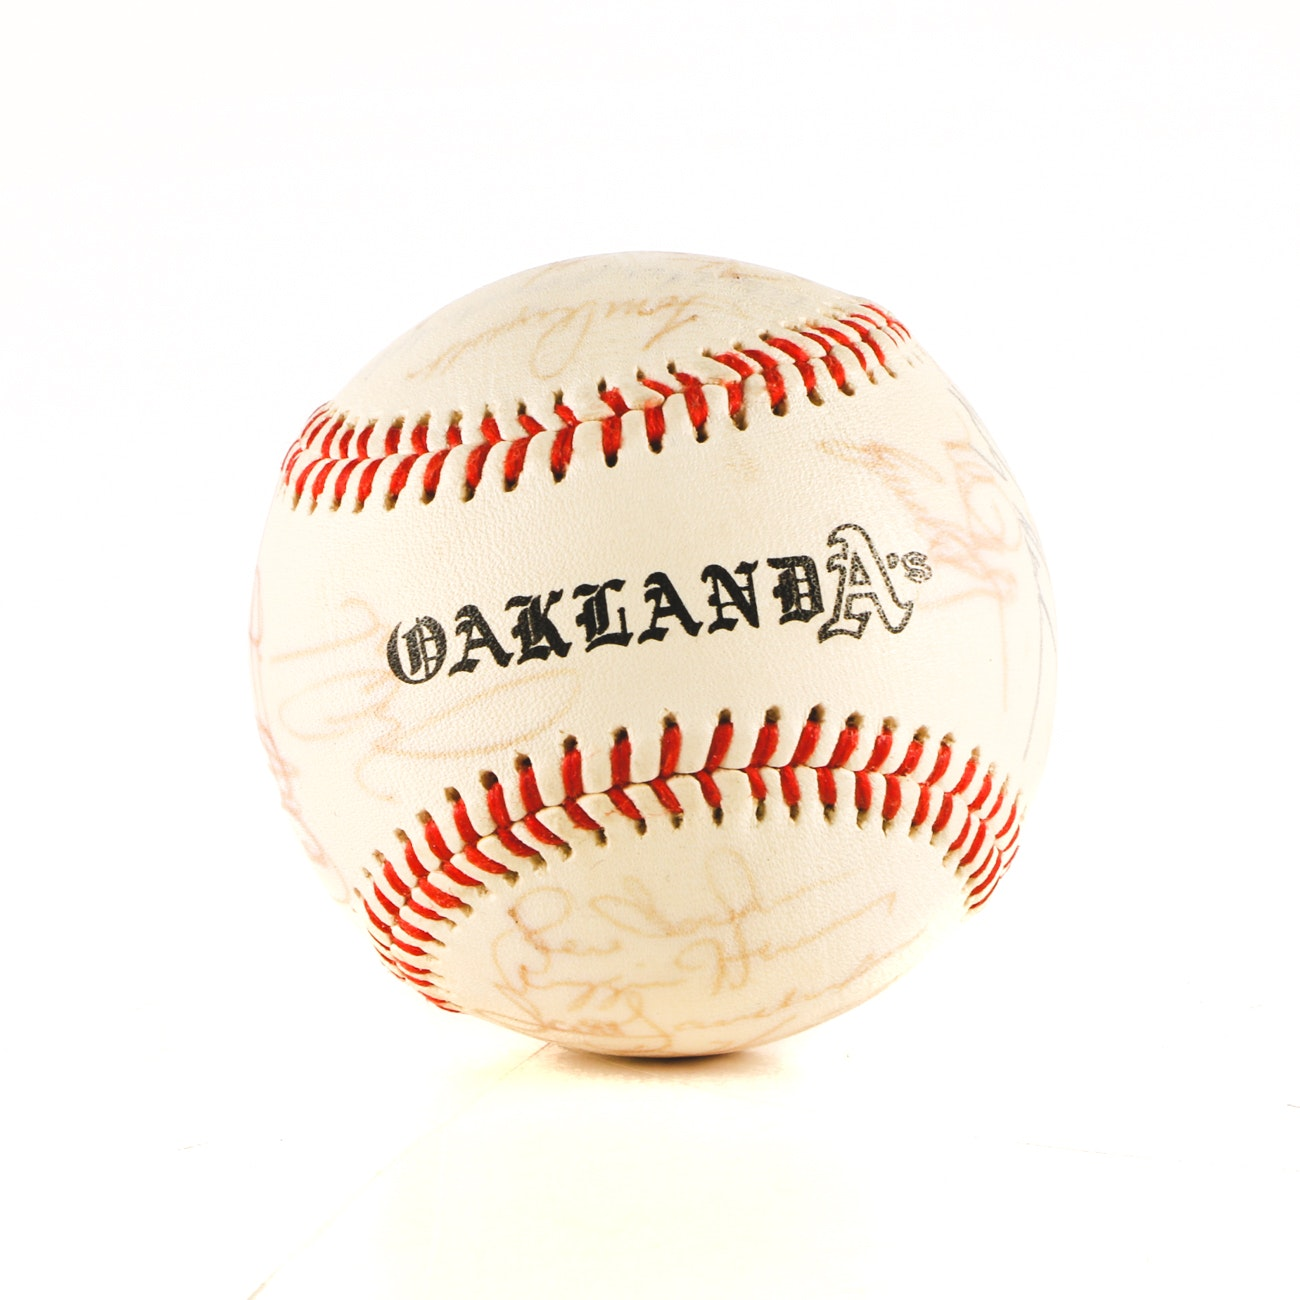 1990 Oakland Athletics Team Signed Baseball JSA Full Letter